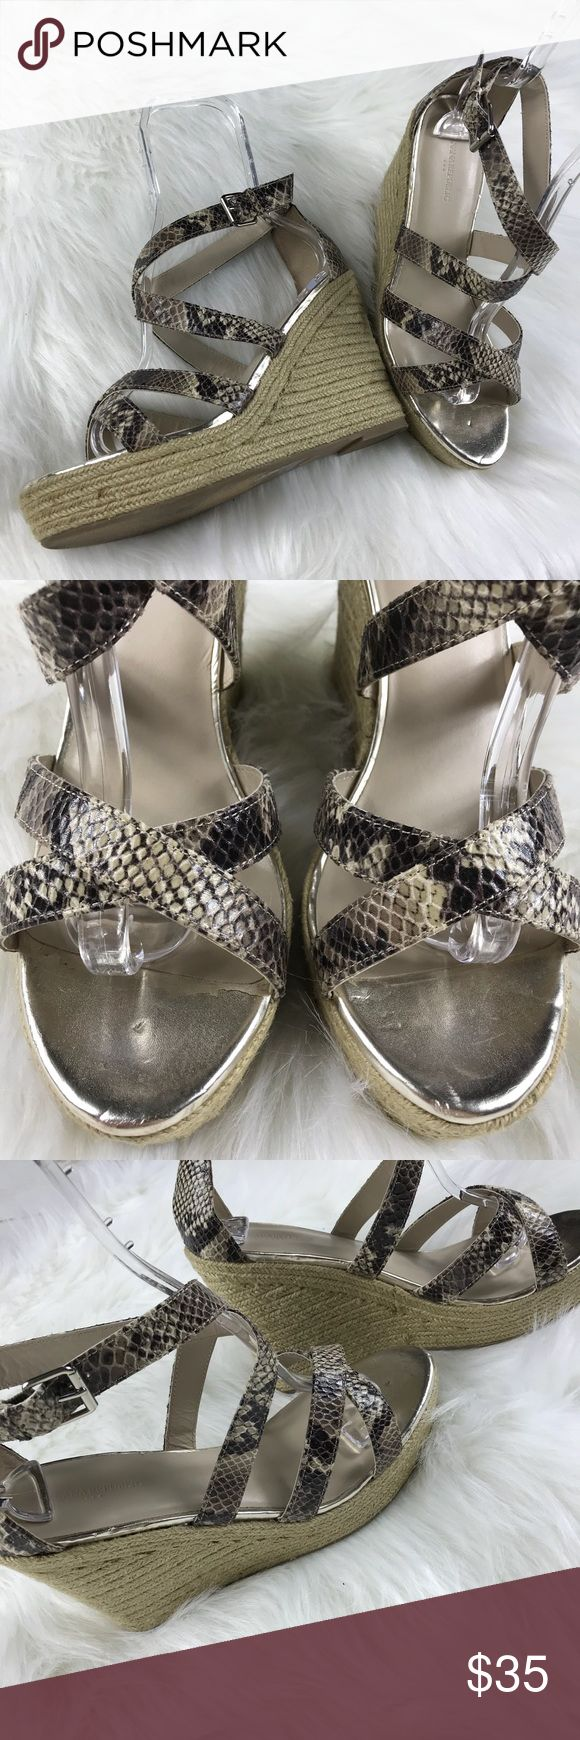 [Banana Republic Factory] Snake Espadrille Wedges • Lightly Used • Excellent Condition • Signs of Wear On Front Top Inside Shoes & Bottoms • Snakeskin Reptile Print • Woven Espadrilles Bottoms • Silver Hardware • Wedge Style • Adjustable Buckle Fastening • Heel Height: 5ins • Platform Height: 1.5ins • Upper: Textile & Other Materials • Lining & Sock: Other Materials • Outsole: Textile & Other Materials Banana Republic Shoes Wedges